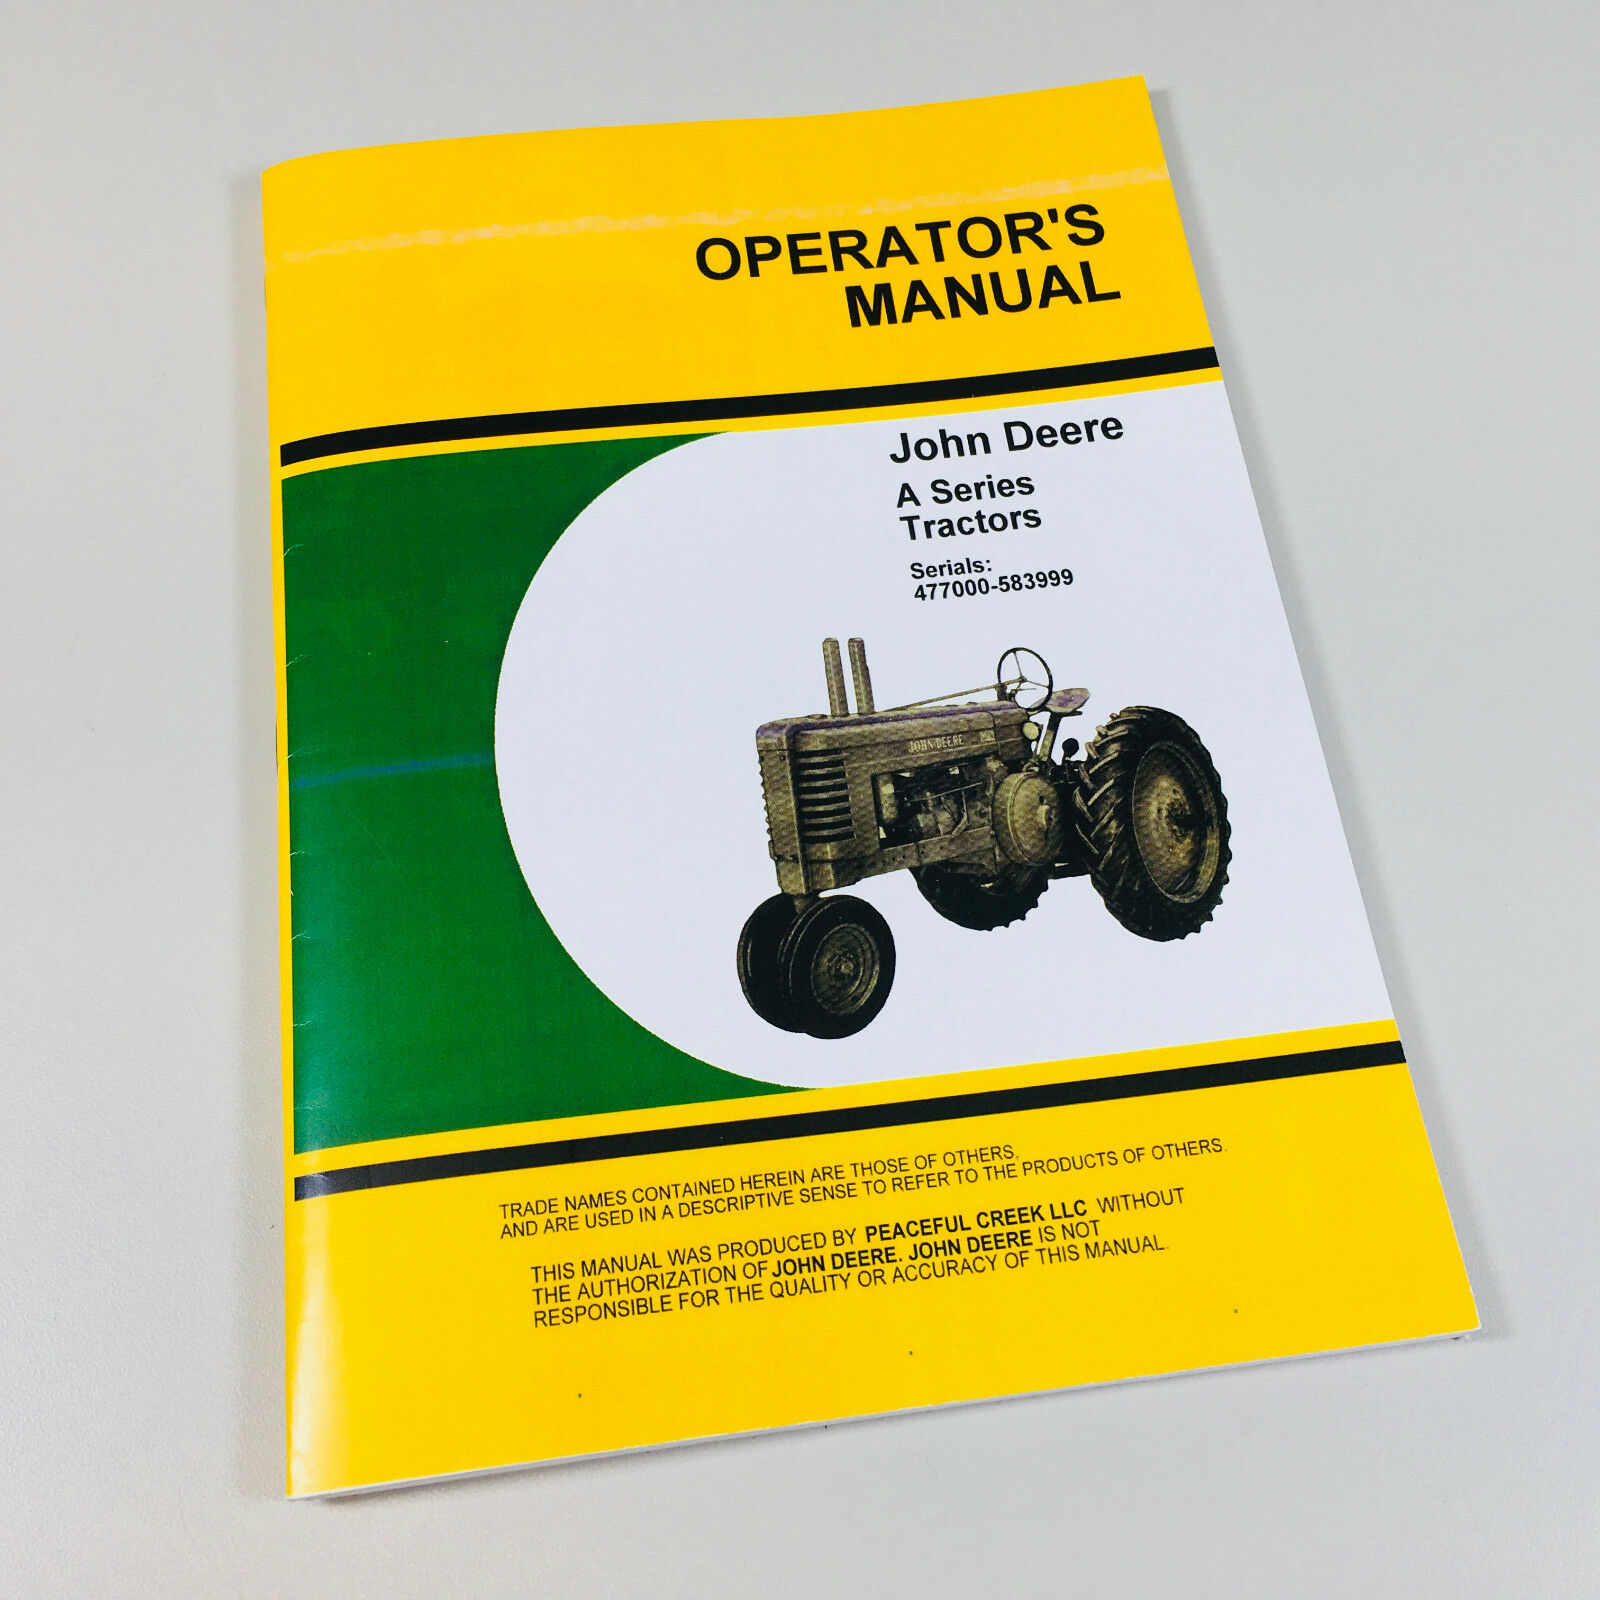 Complete Operators Manual Covers: